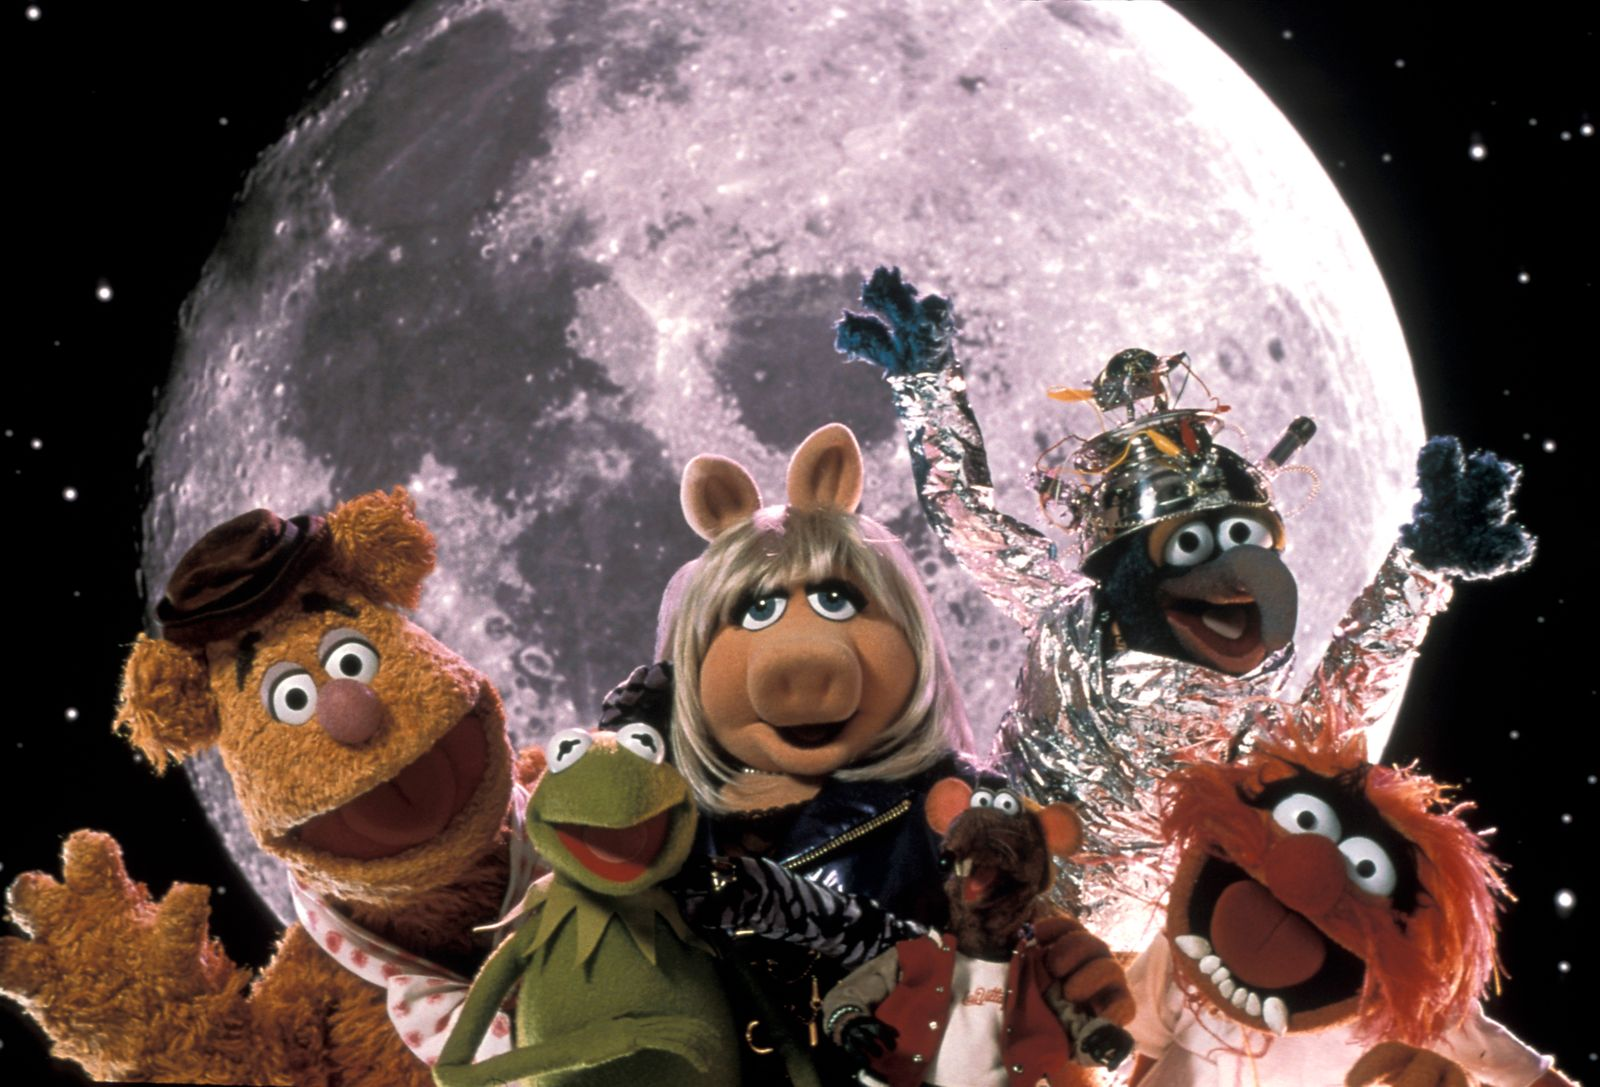 """""""Muppets from Space"""" Fozzie Bear, Kermit the Frog, Miss Piggy, Rizzo the Rat, Gonzo, Animal © 1999 Columbia Pictures Photo by Nels Israelson"""